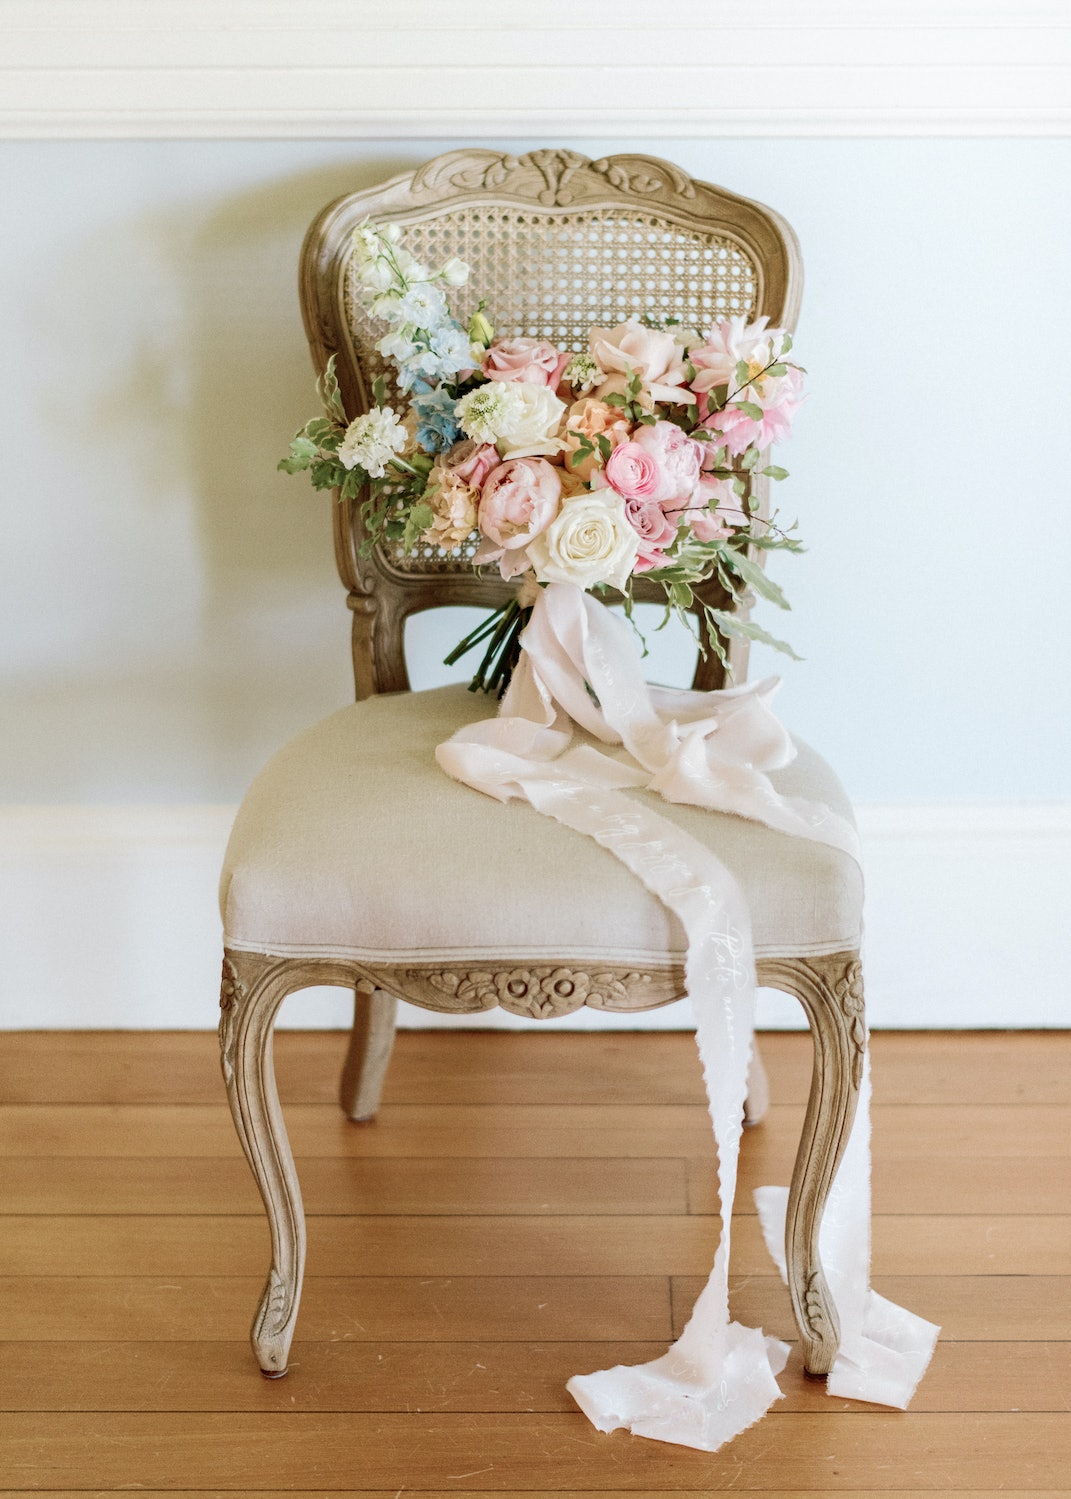 Bouquet on chairs